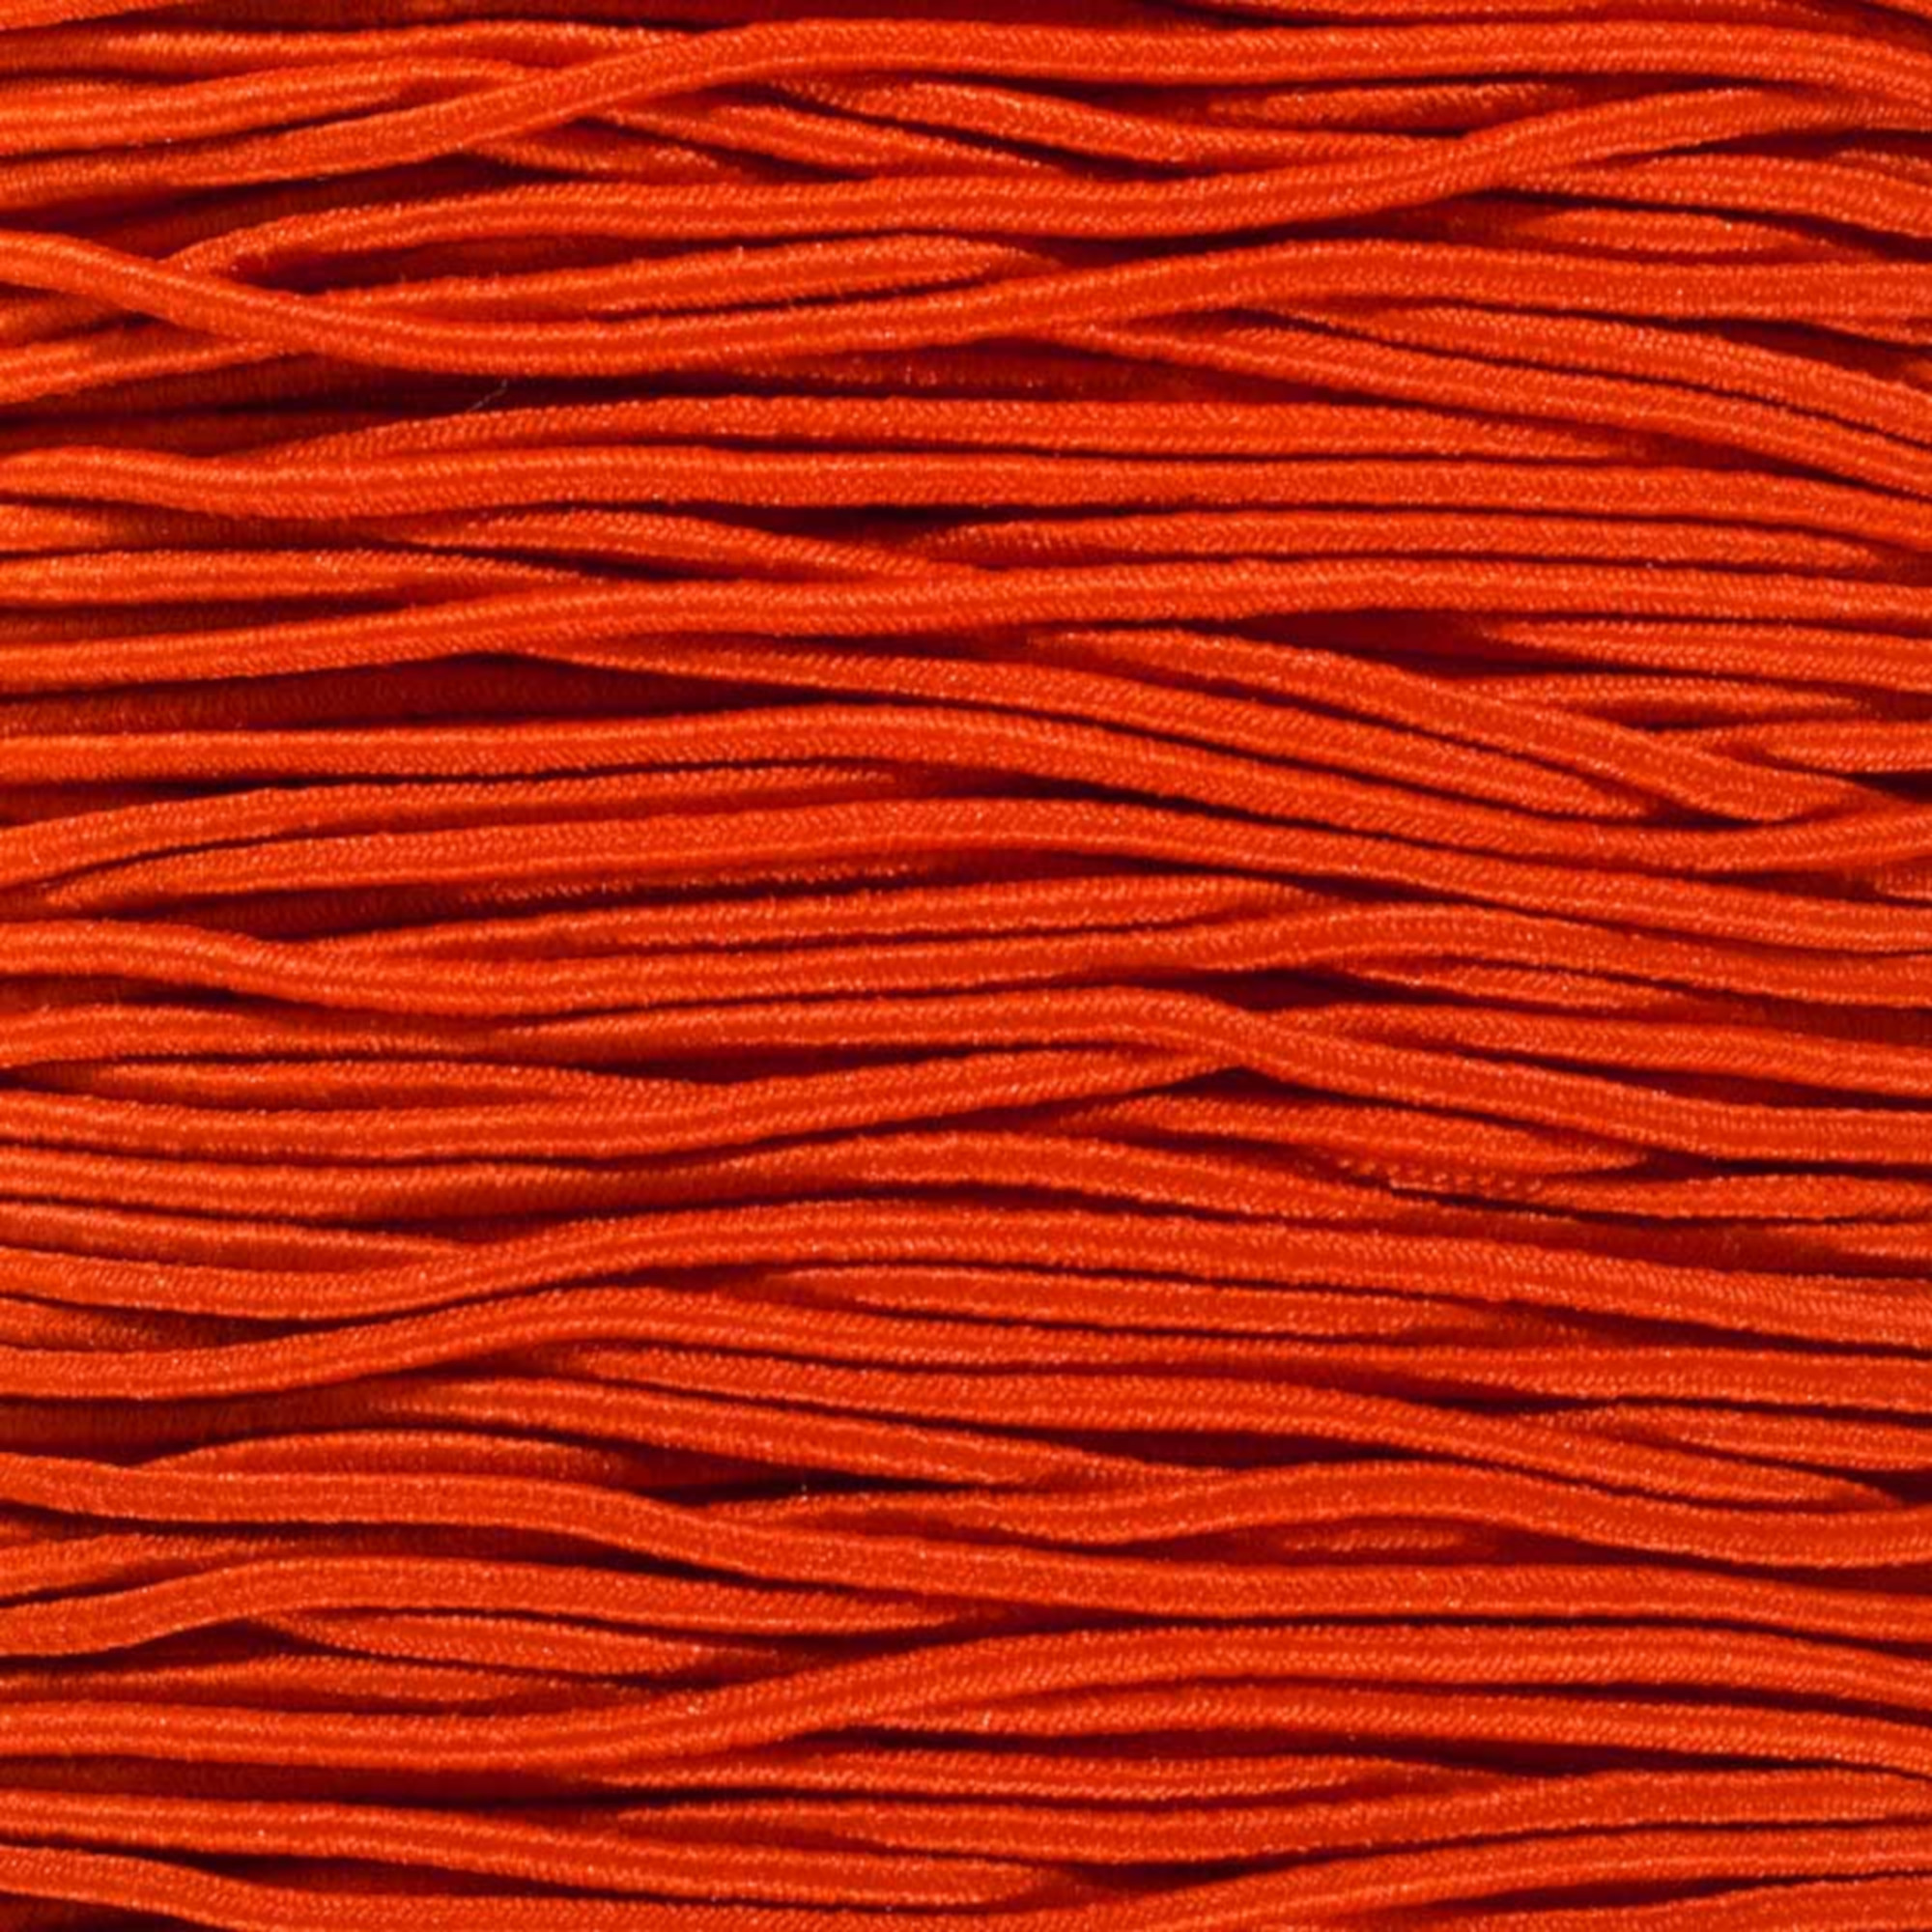 Paracord Planet 1/16 inch Elastic Bungee Nylon Shock Cord Crafting Stretch String - Various Colors - 10, 25, 50, 100, 250, and 1000 Foot Lengths Made in USA